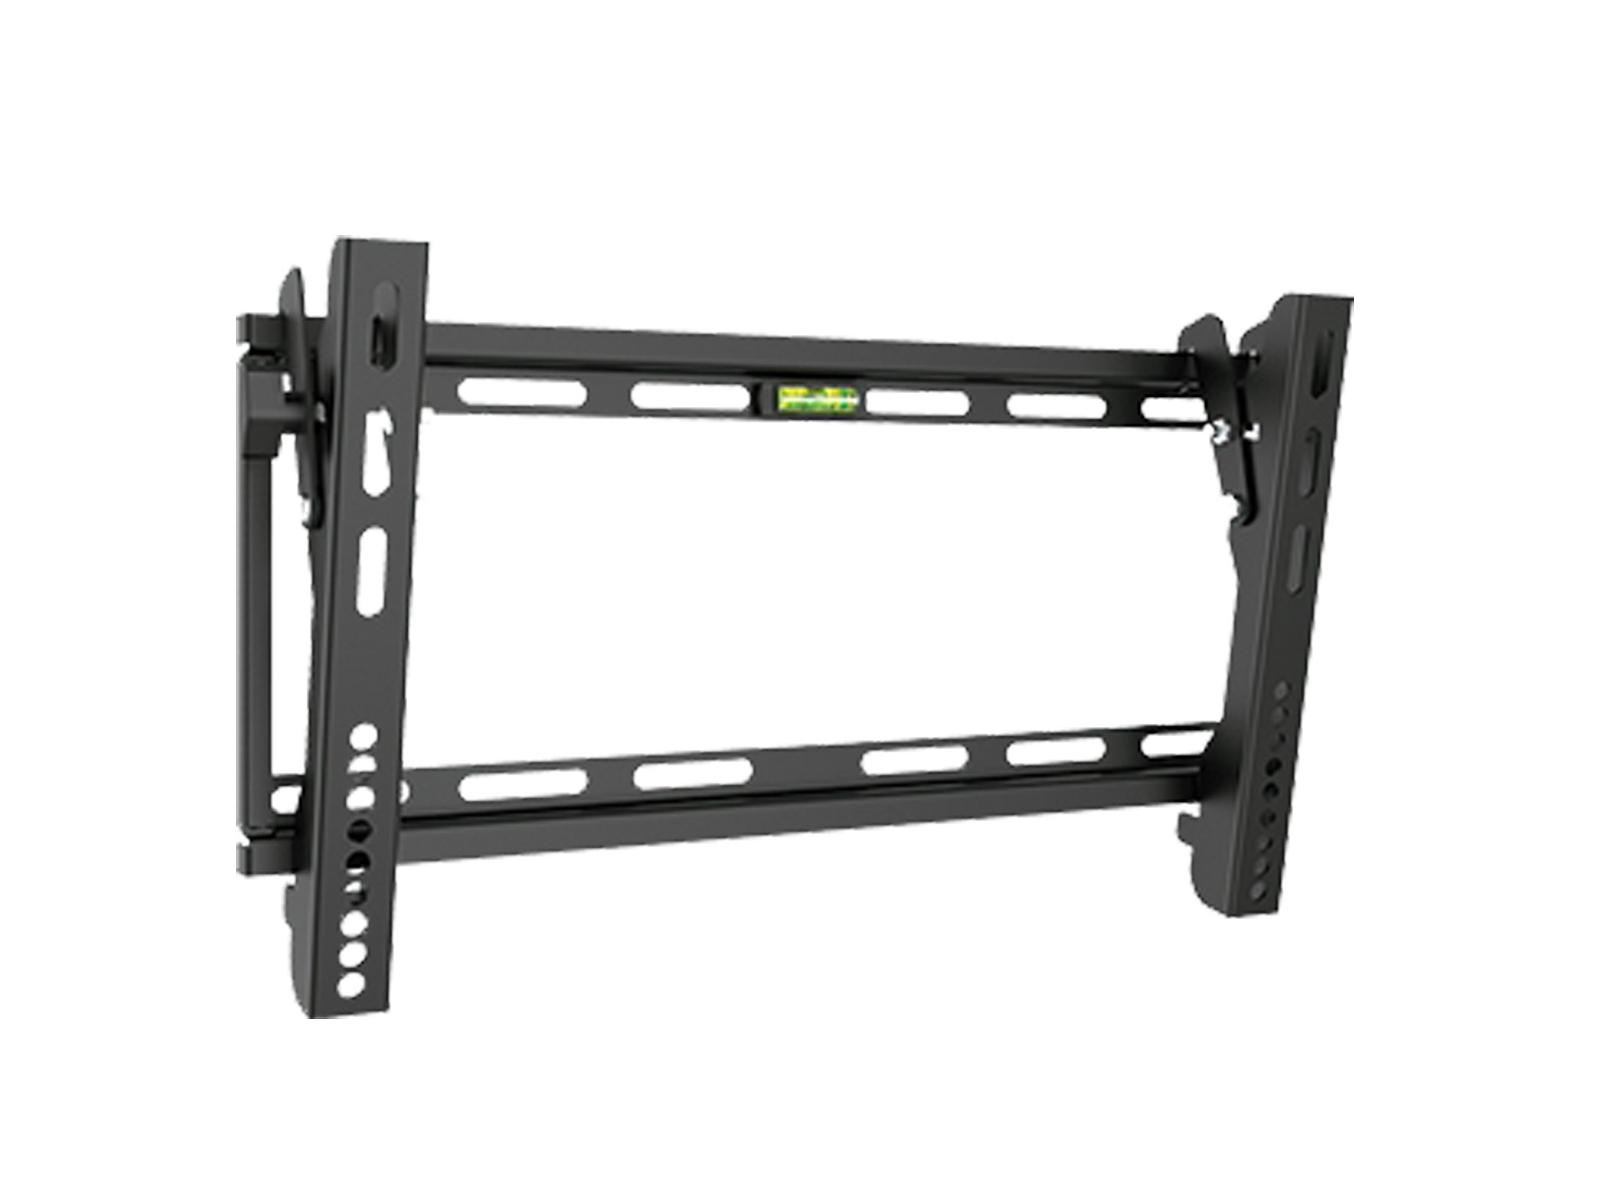 ViewZ VZ-WM50 Wall Mount for 27 inch to 32 inch monitors